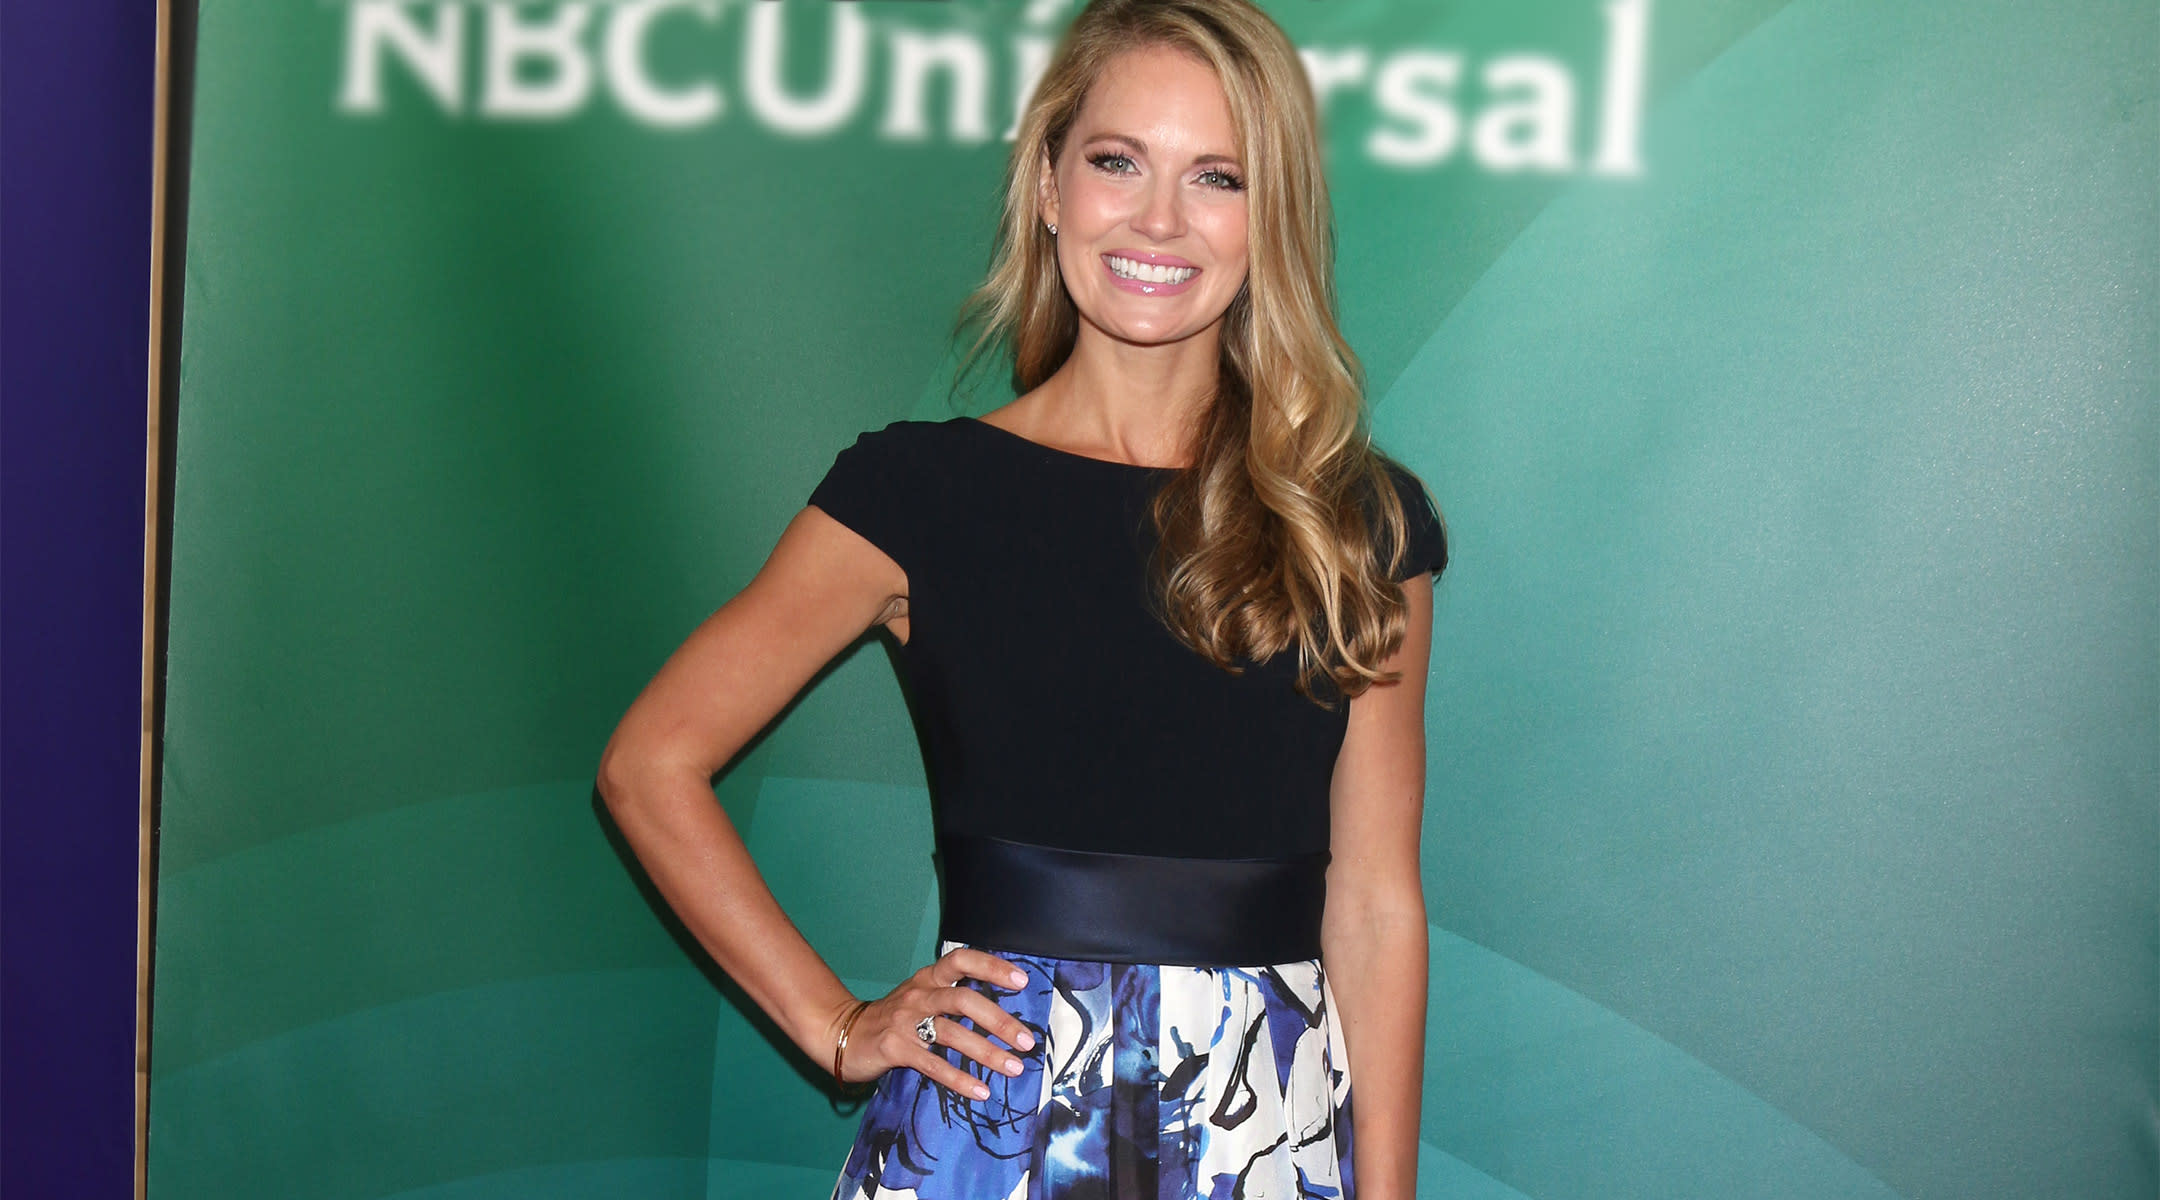 cameran eubanks writes post about taking down her pro vaccine post